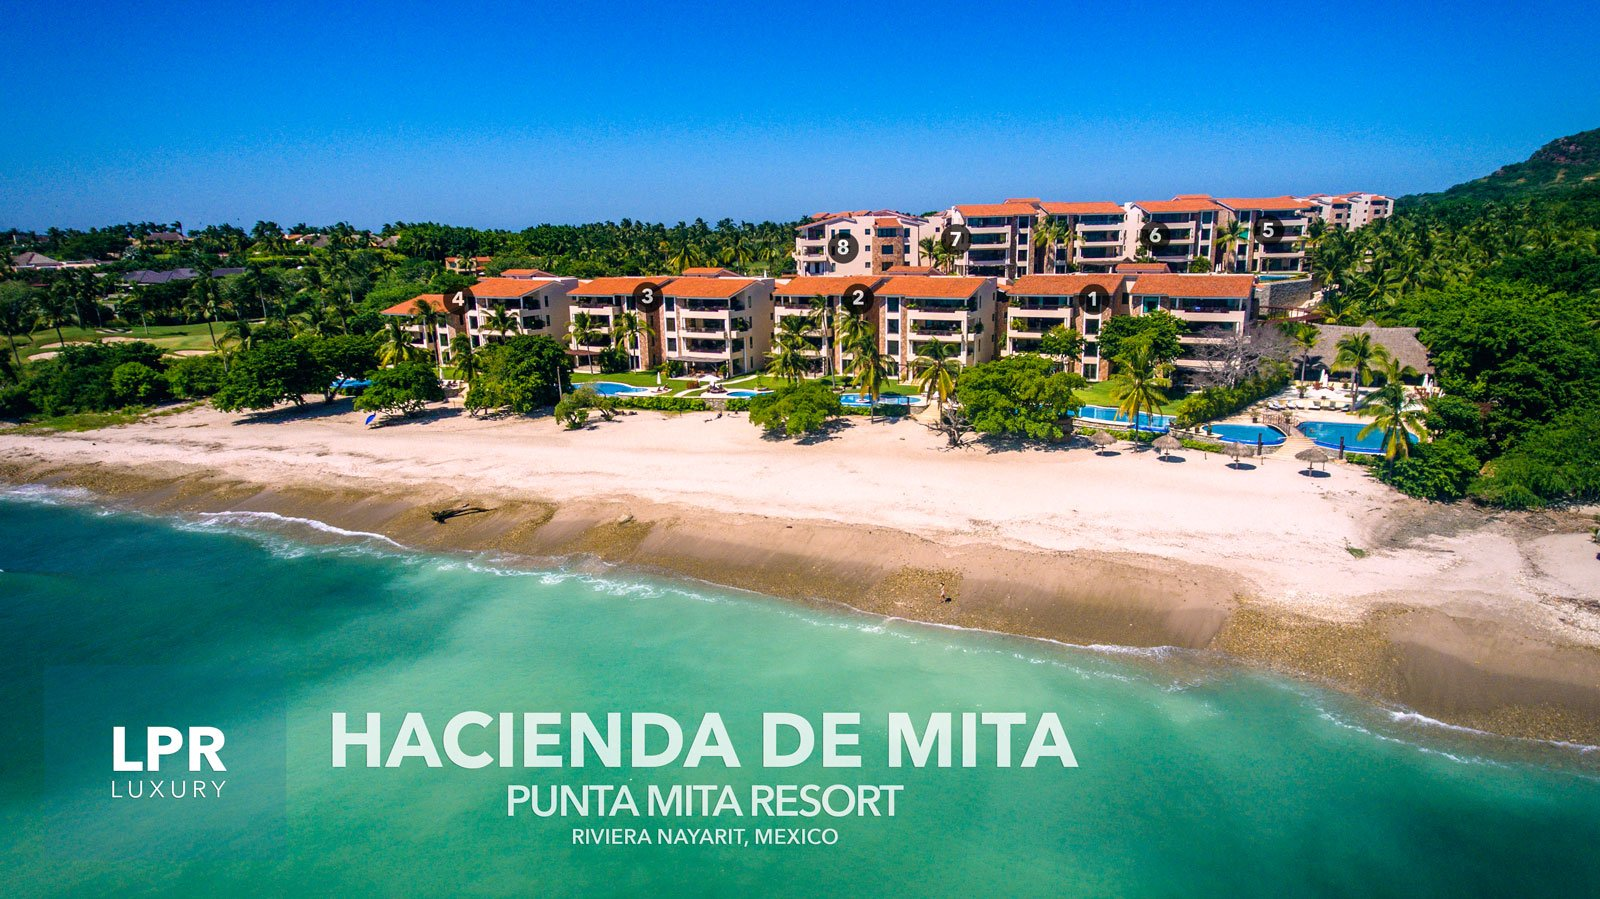 Hacienda de Mita - Luxury Punta Mita Mexico condos for sale and rent